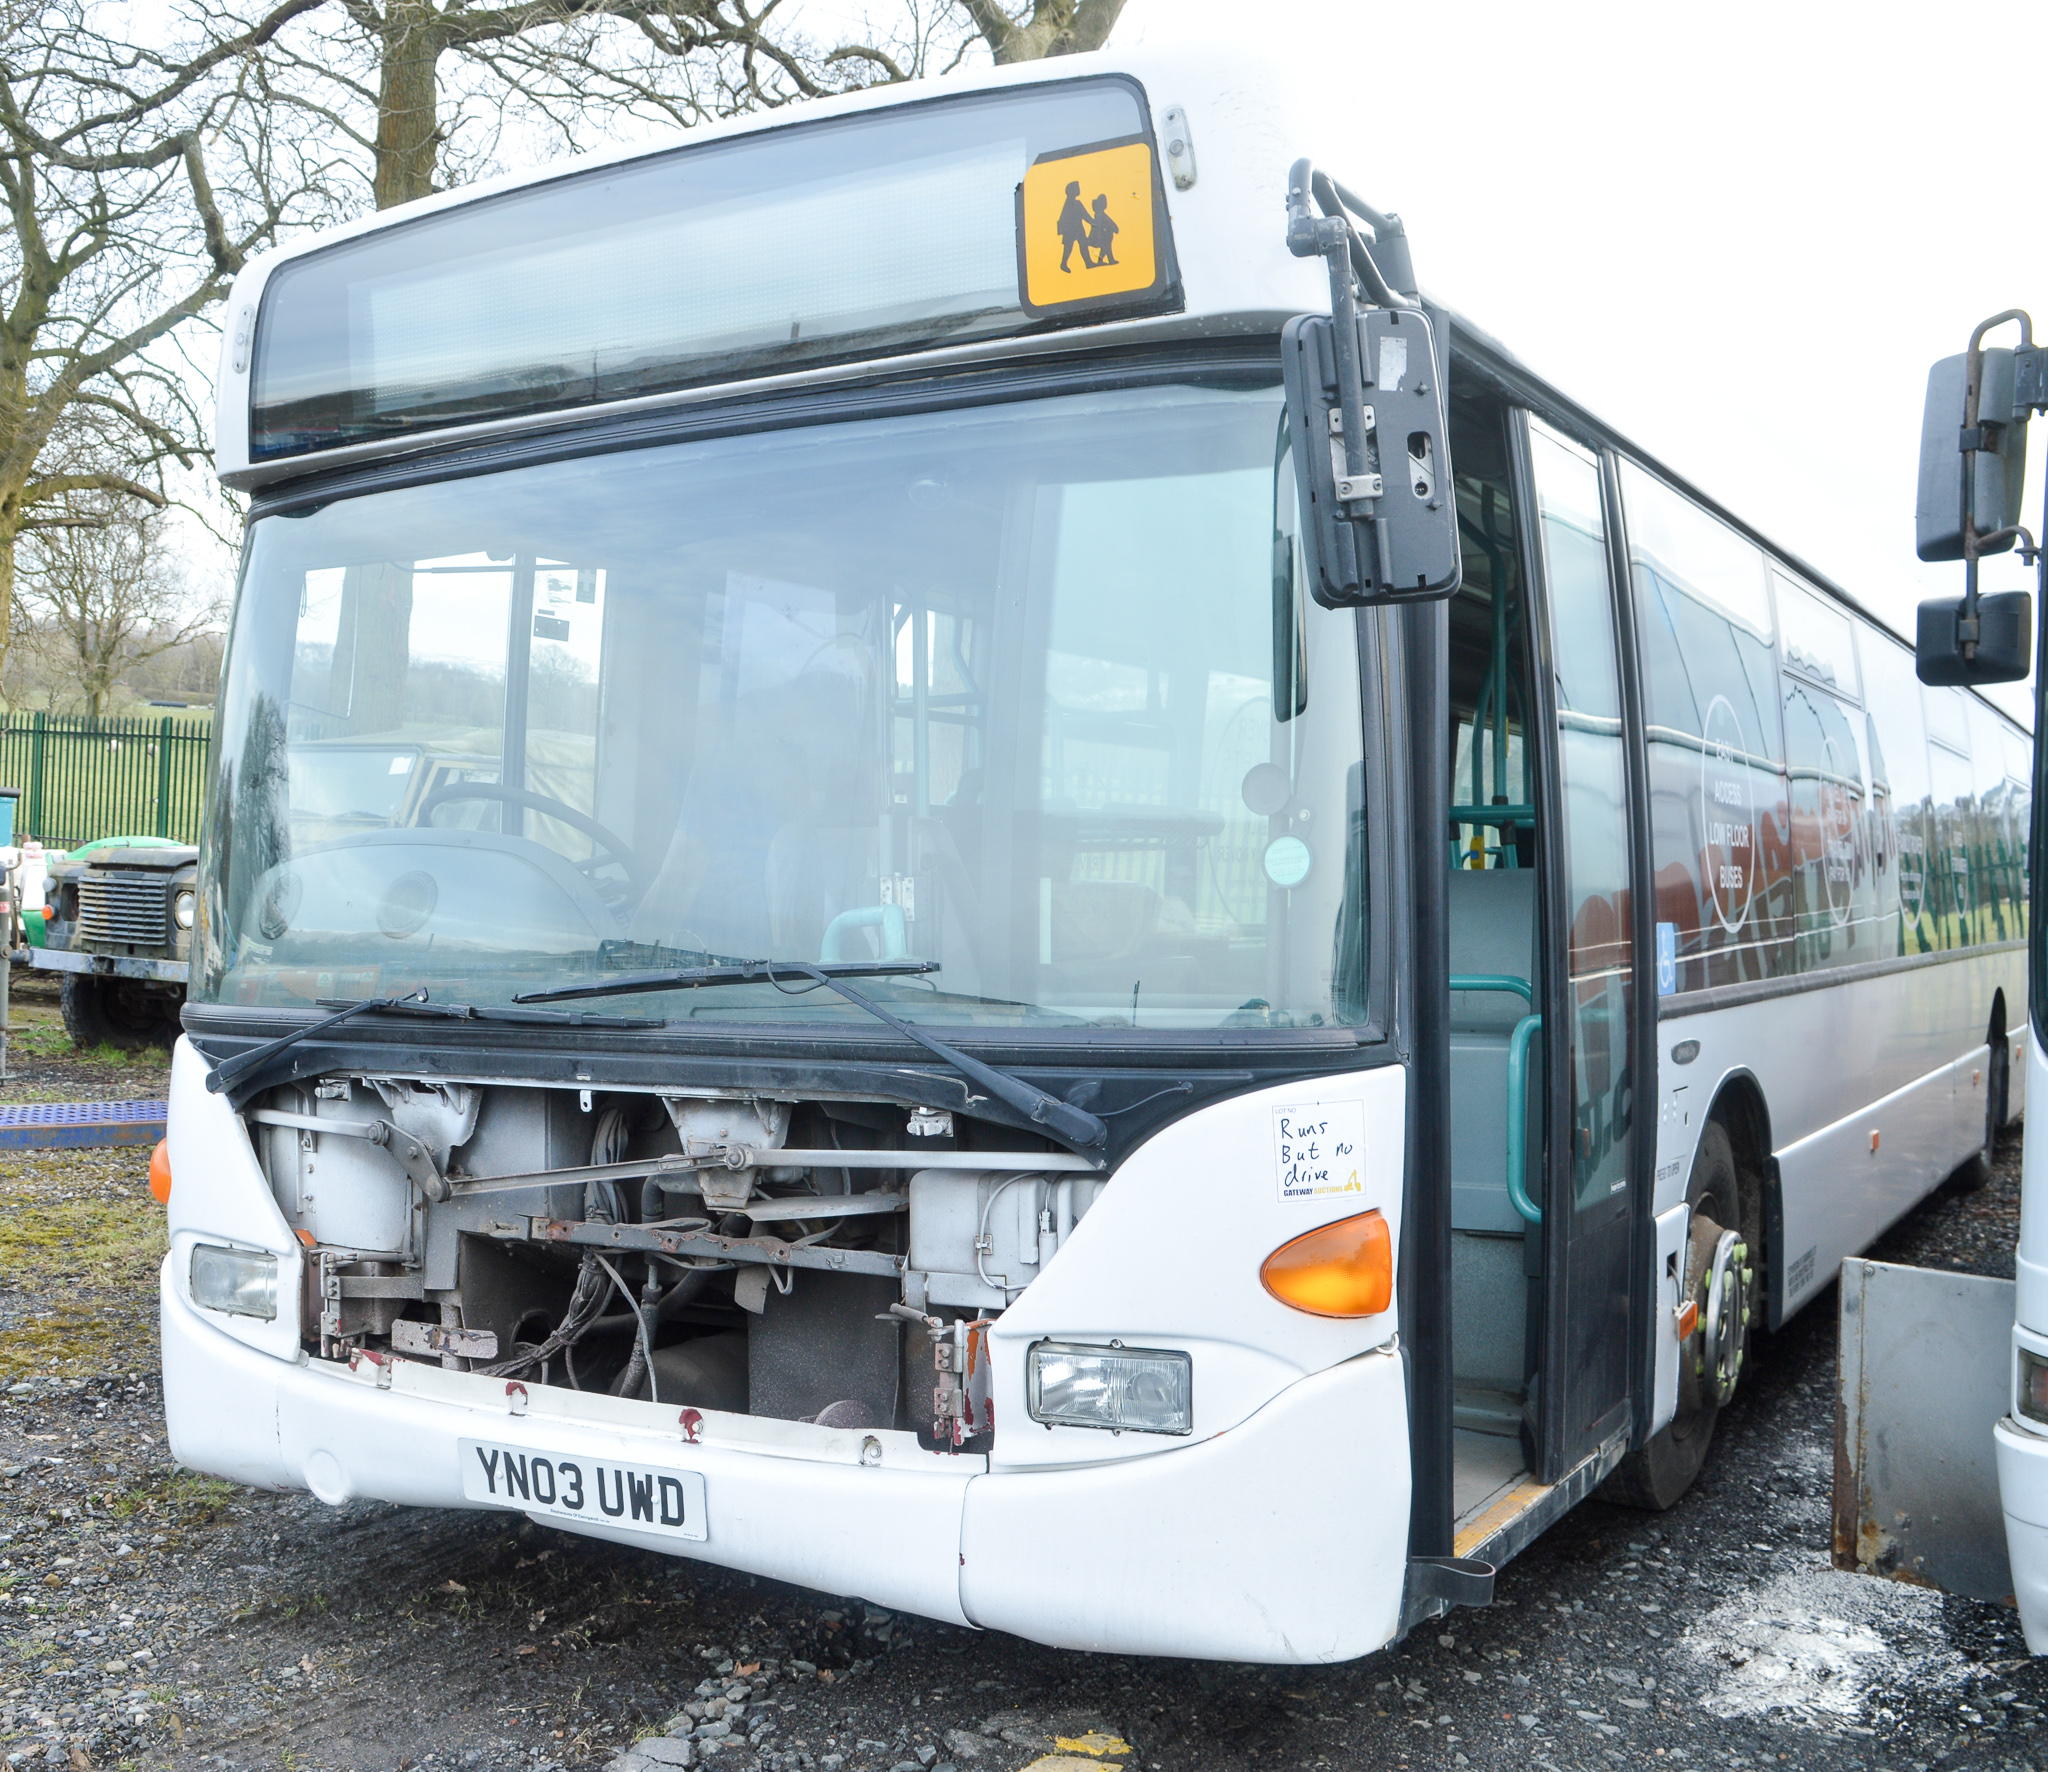 Lot 52 - Scania 42 seat single deck service bus Registration Number: YN03 UWD Date of Registration: 10/04/